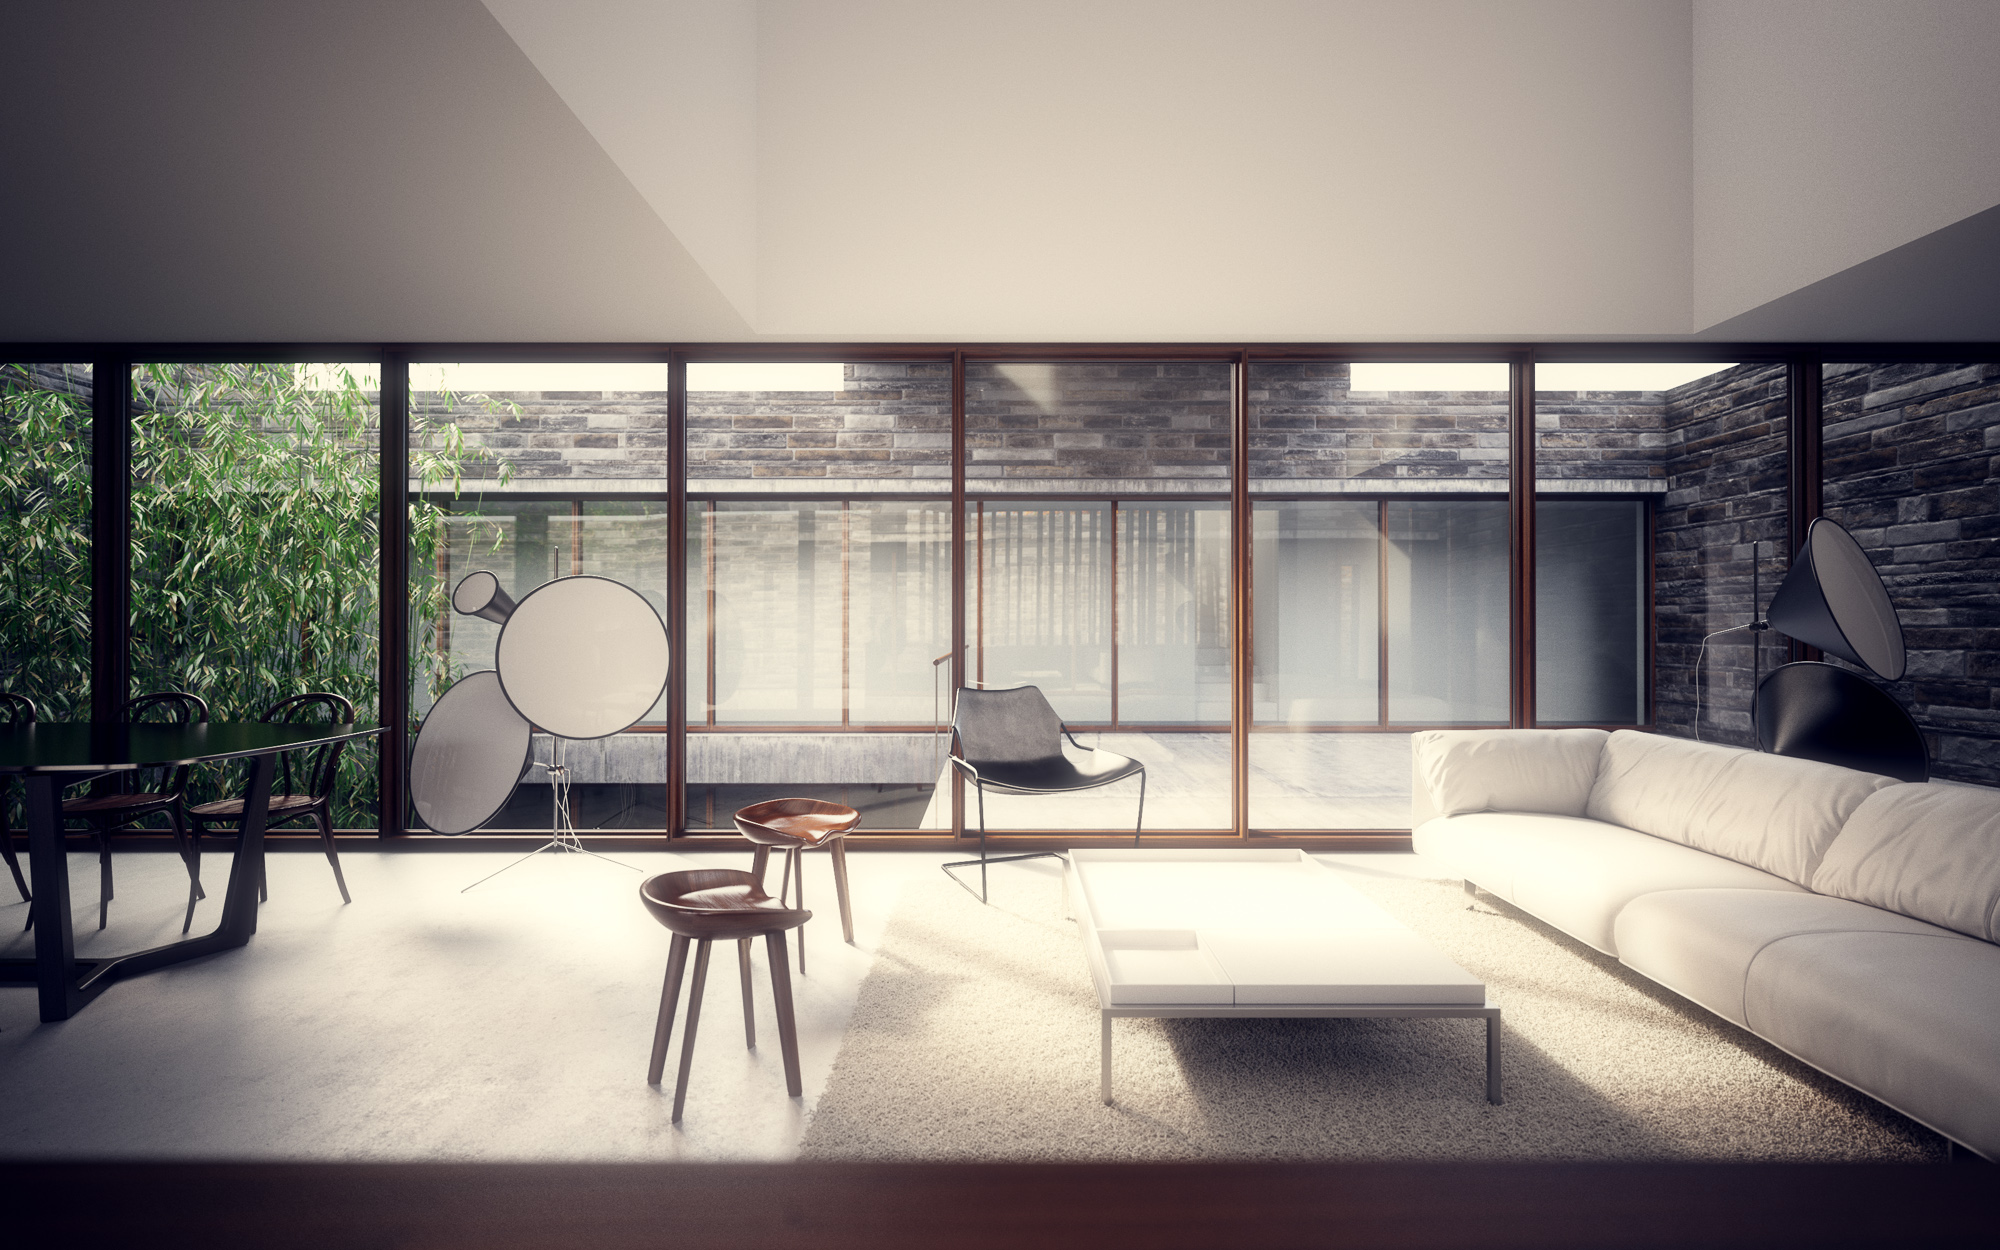 19 Lighting Architectural Renderings In Photoshop Images Architectural Rendering Photoshop